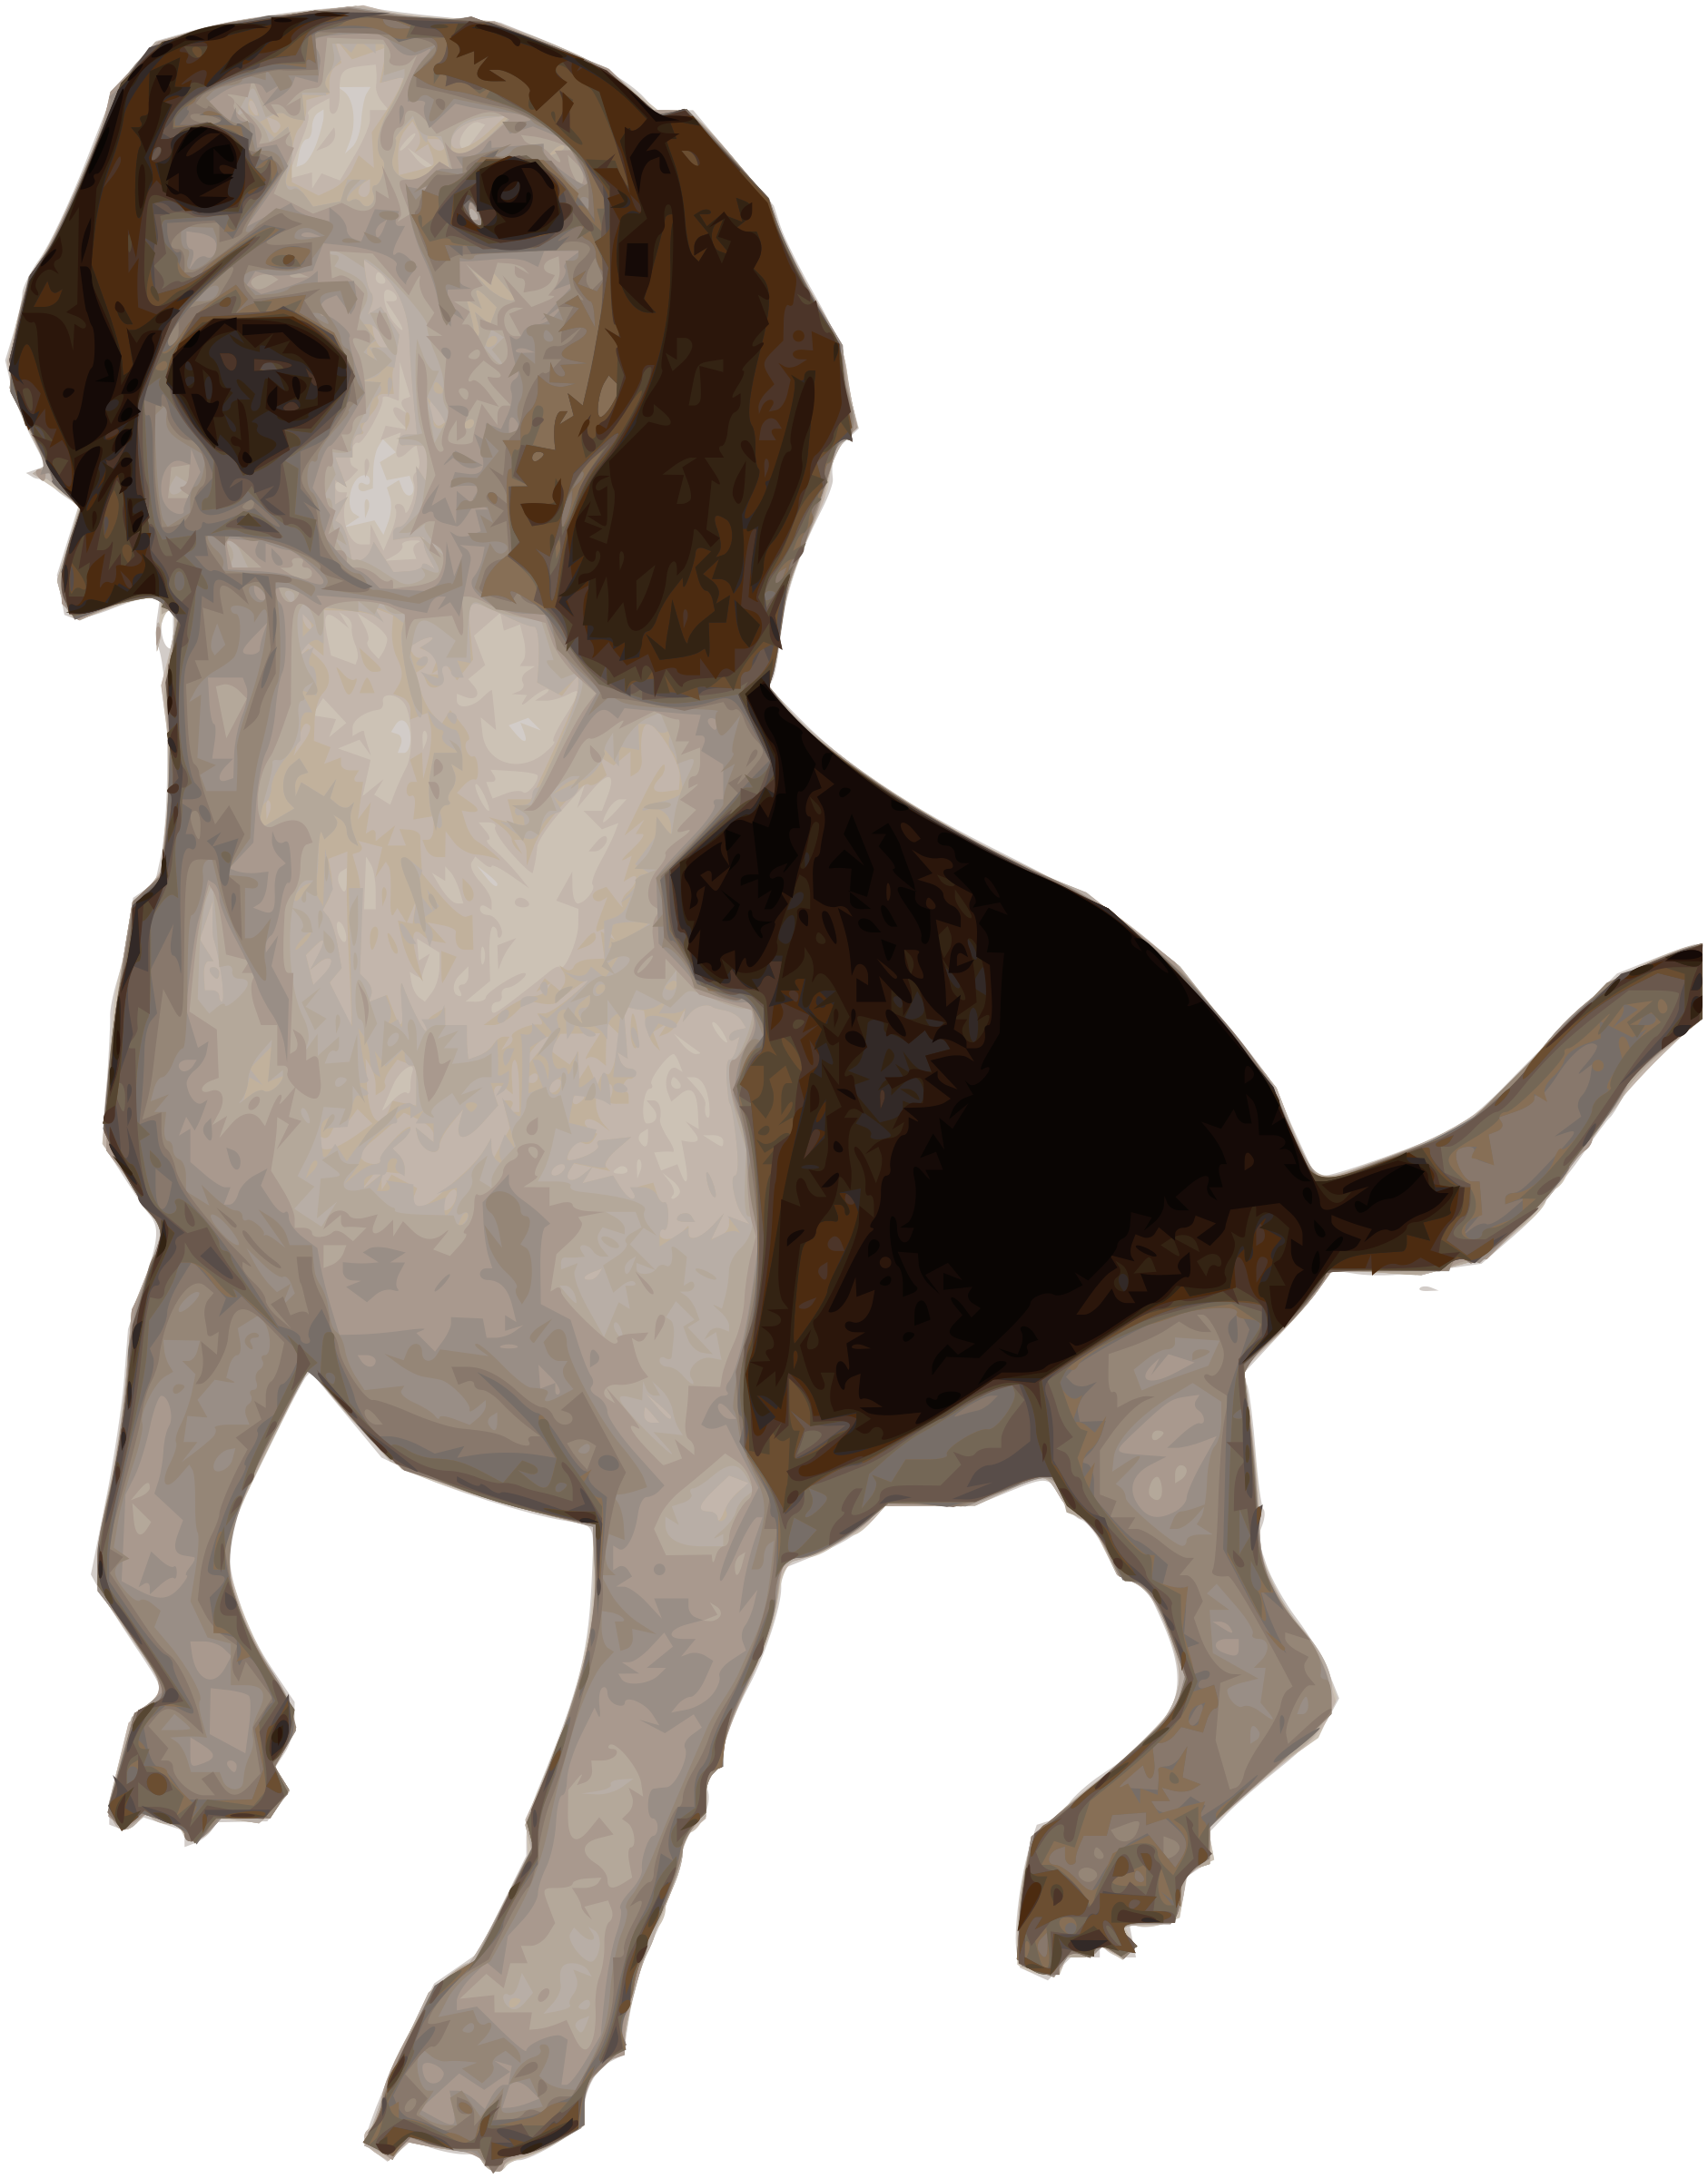 clipart freeuse download Medium version big image. Beagle clipart